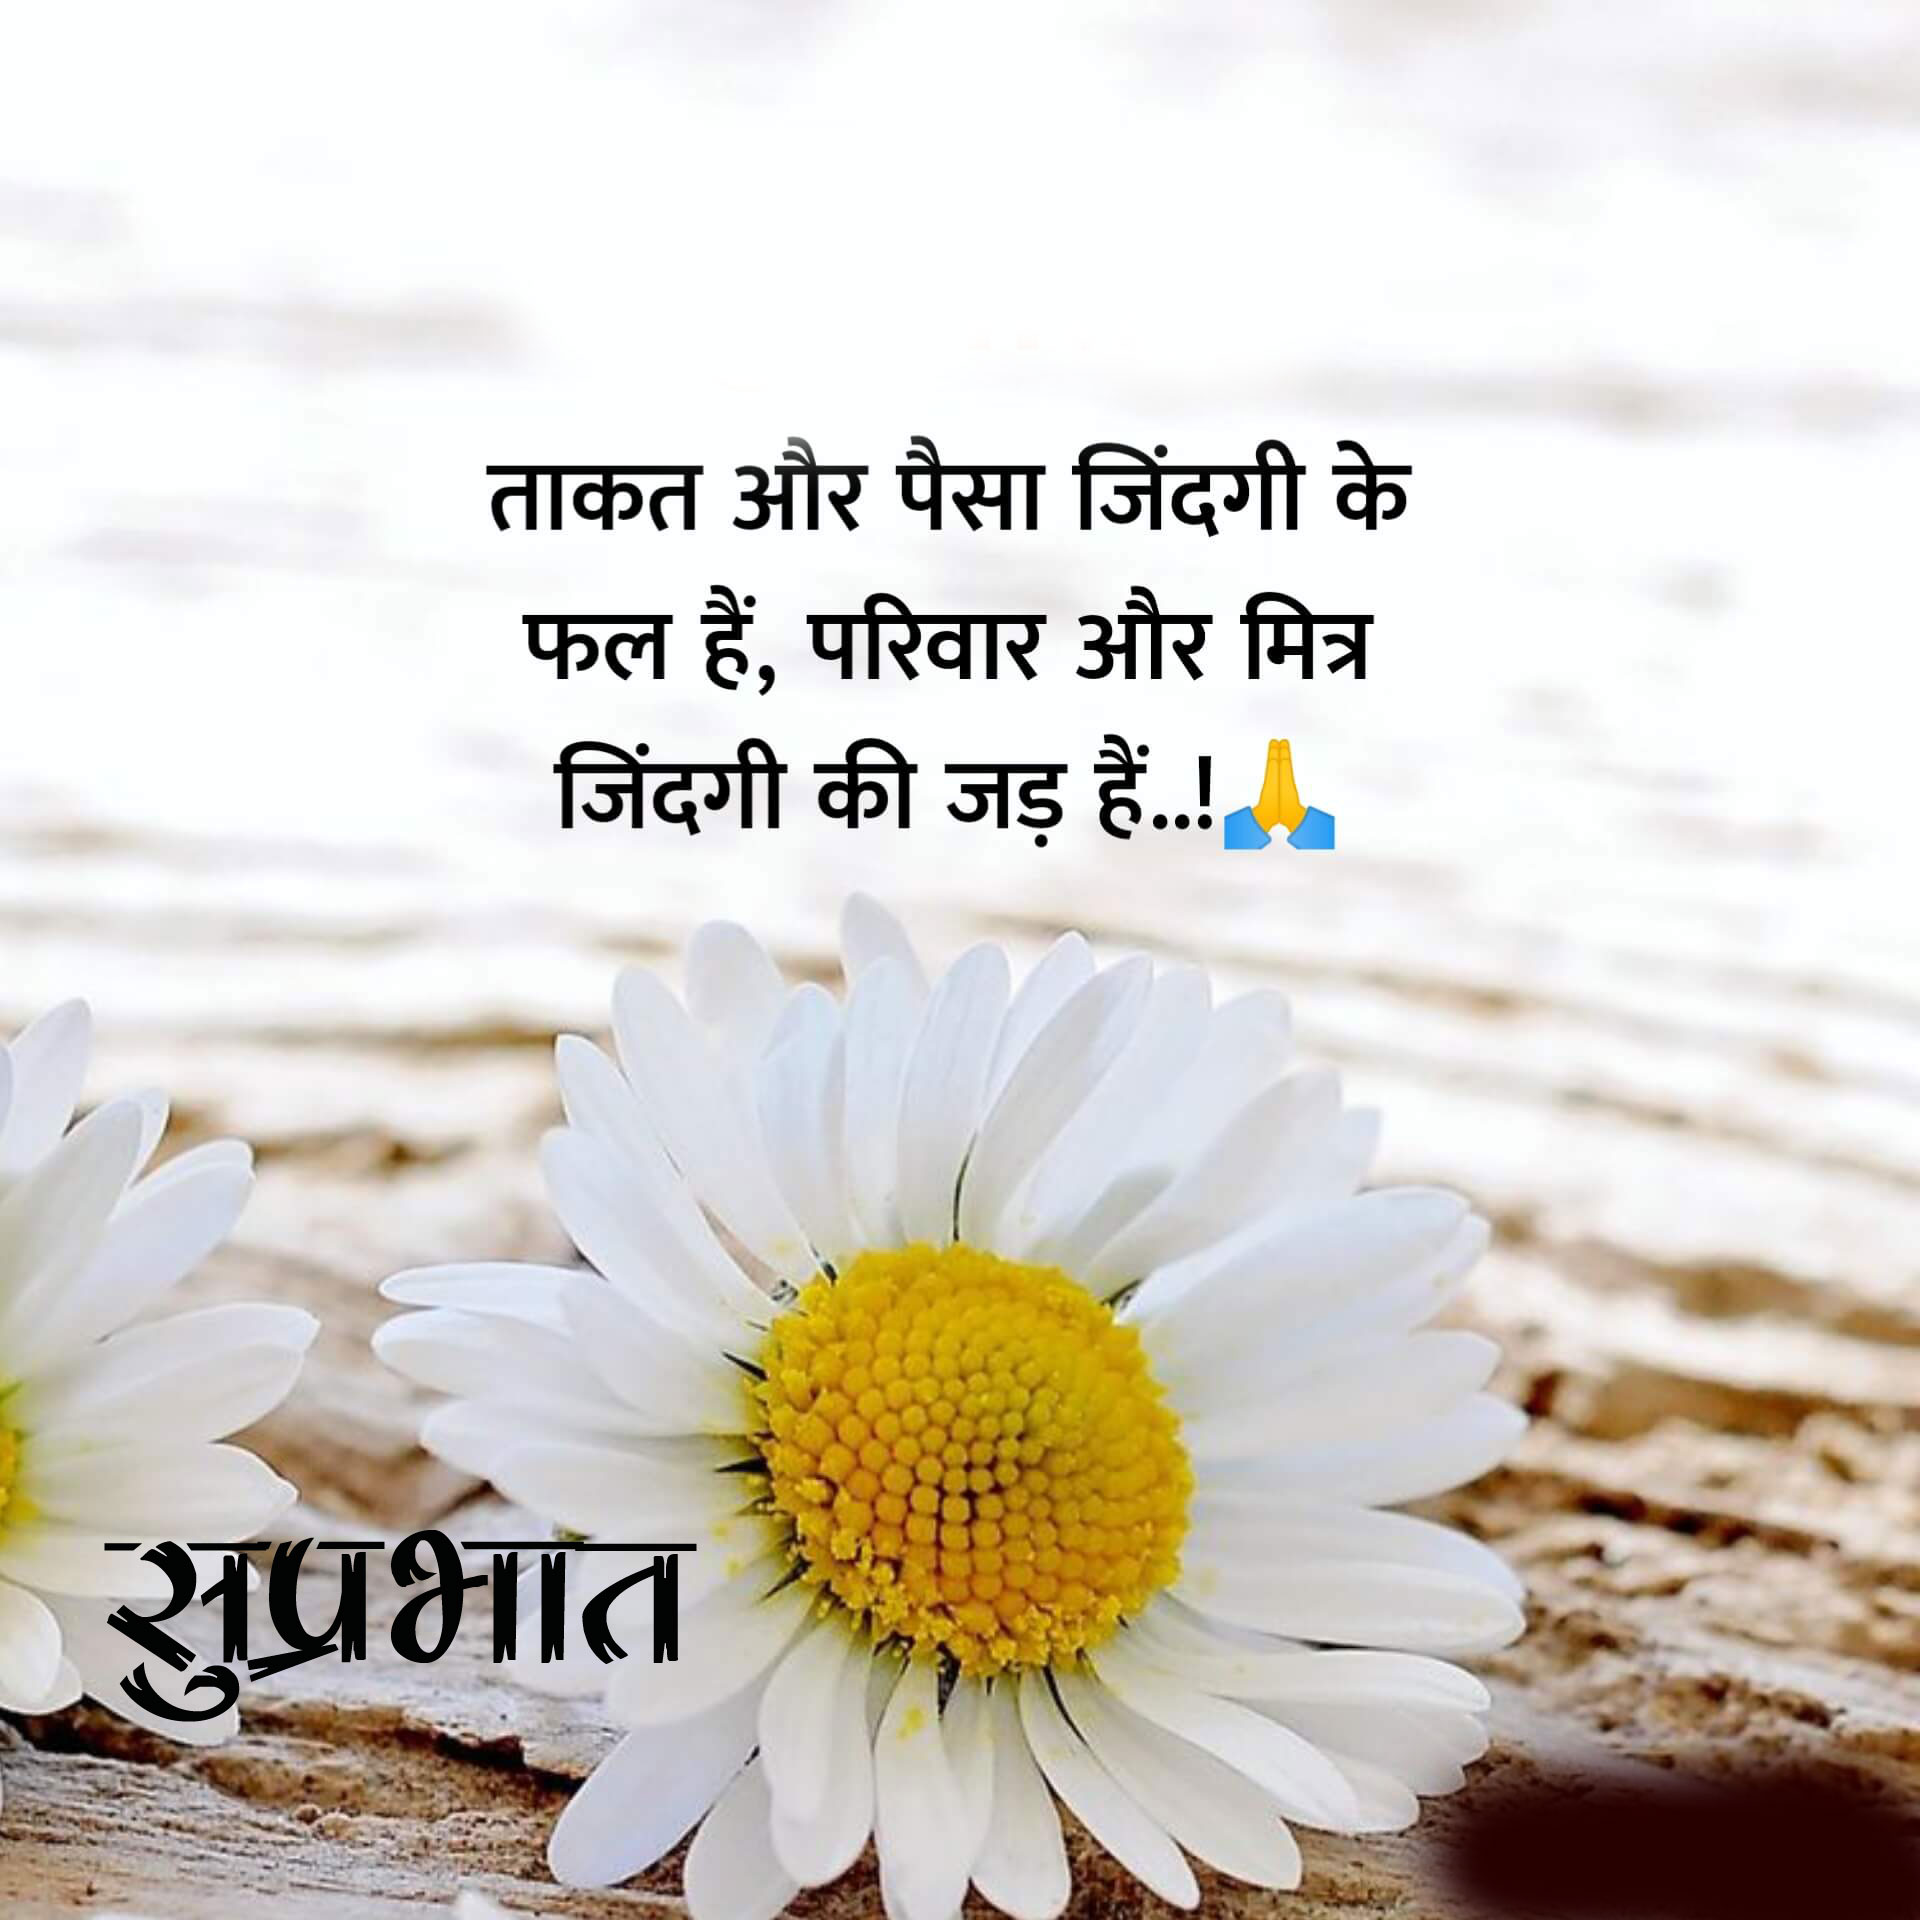 New Beautiful Suprabhat Images for dp